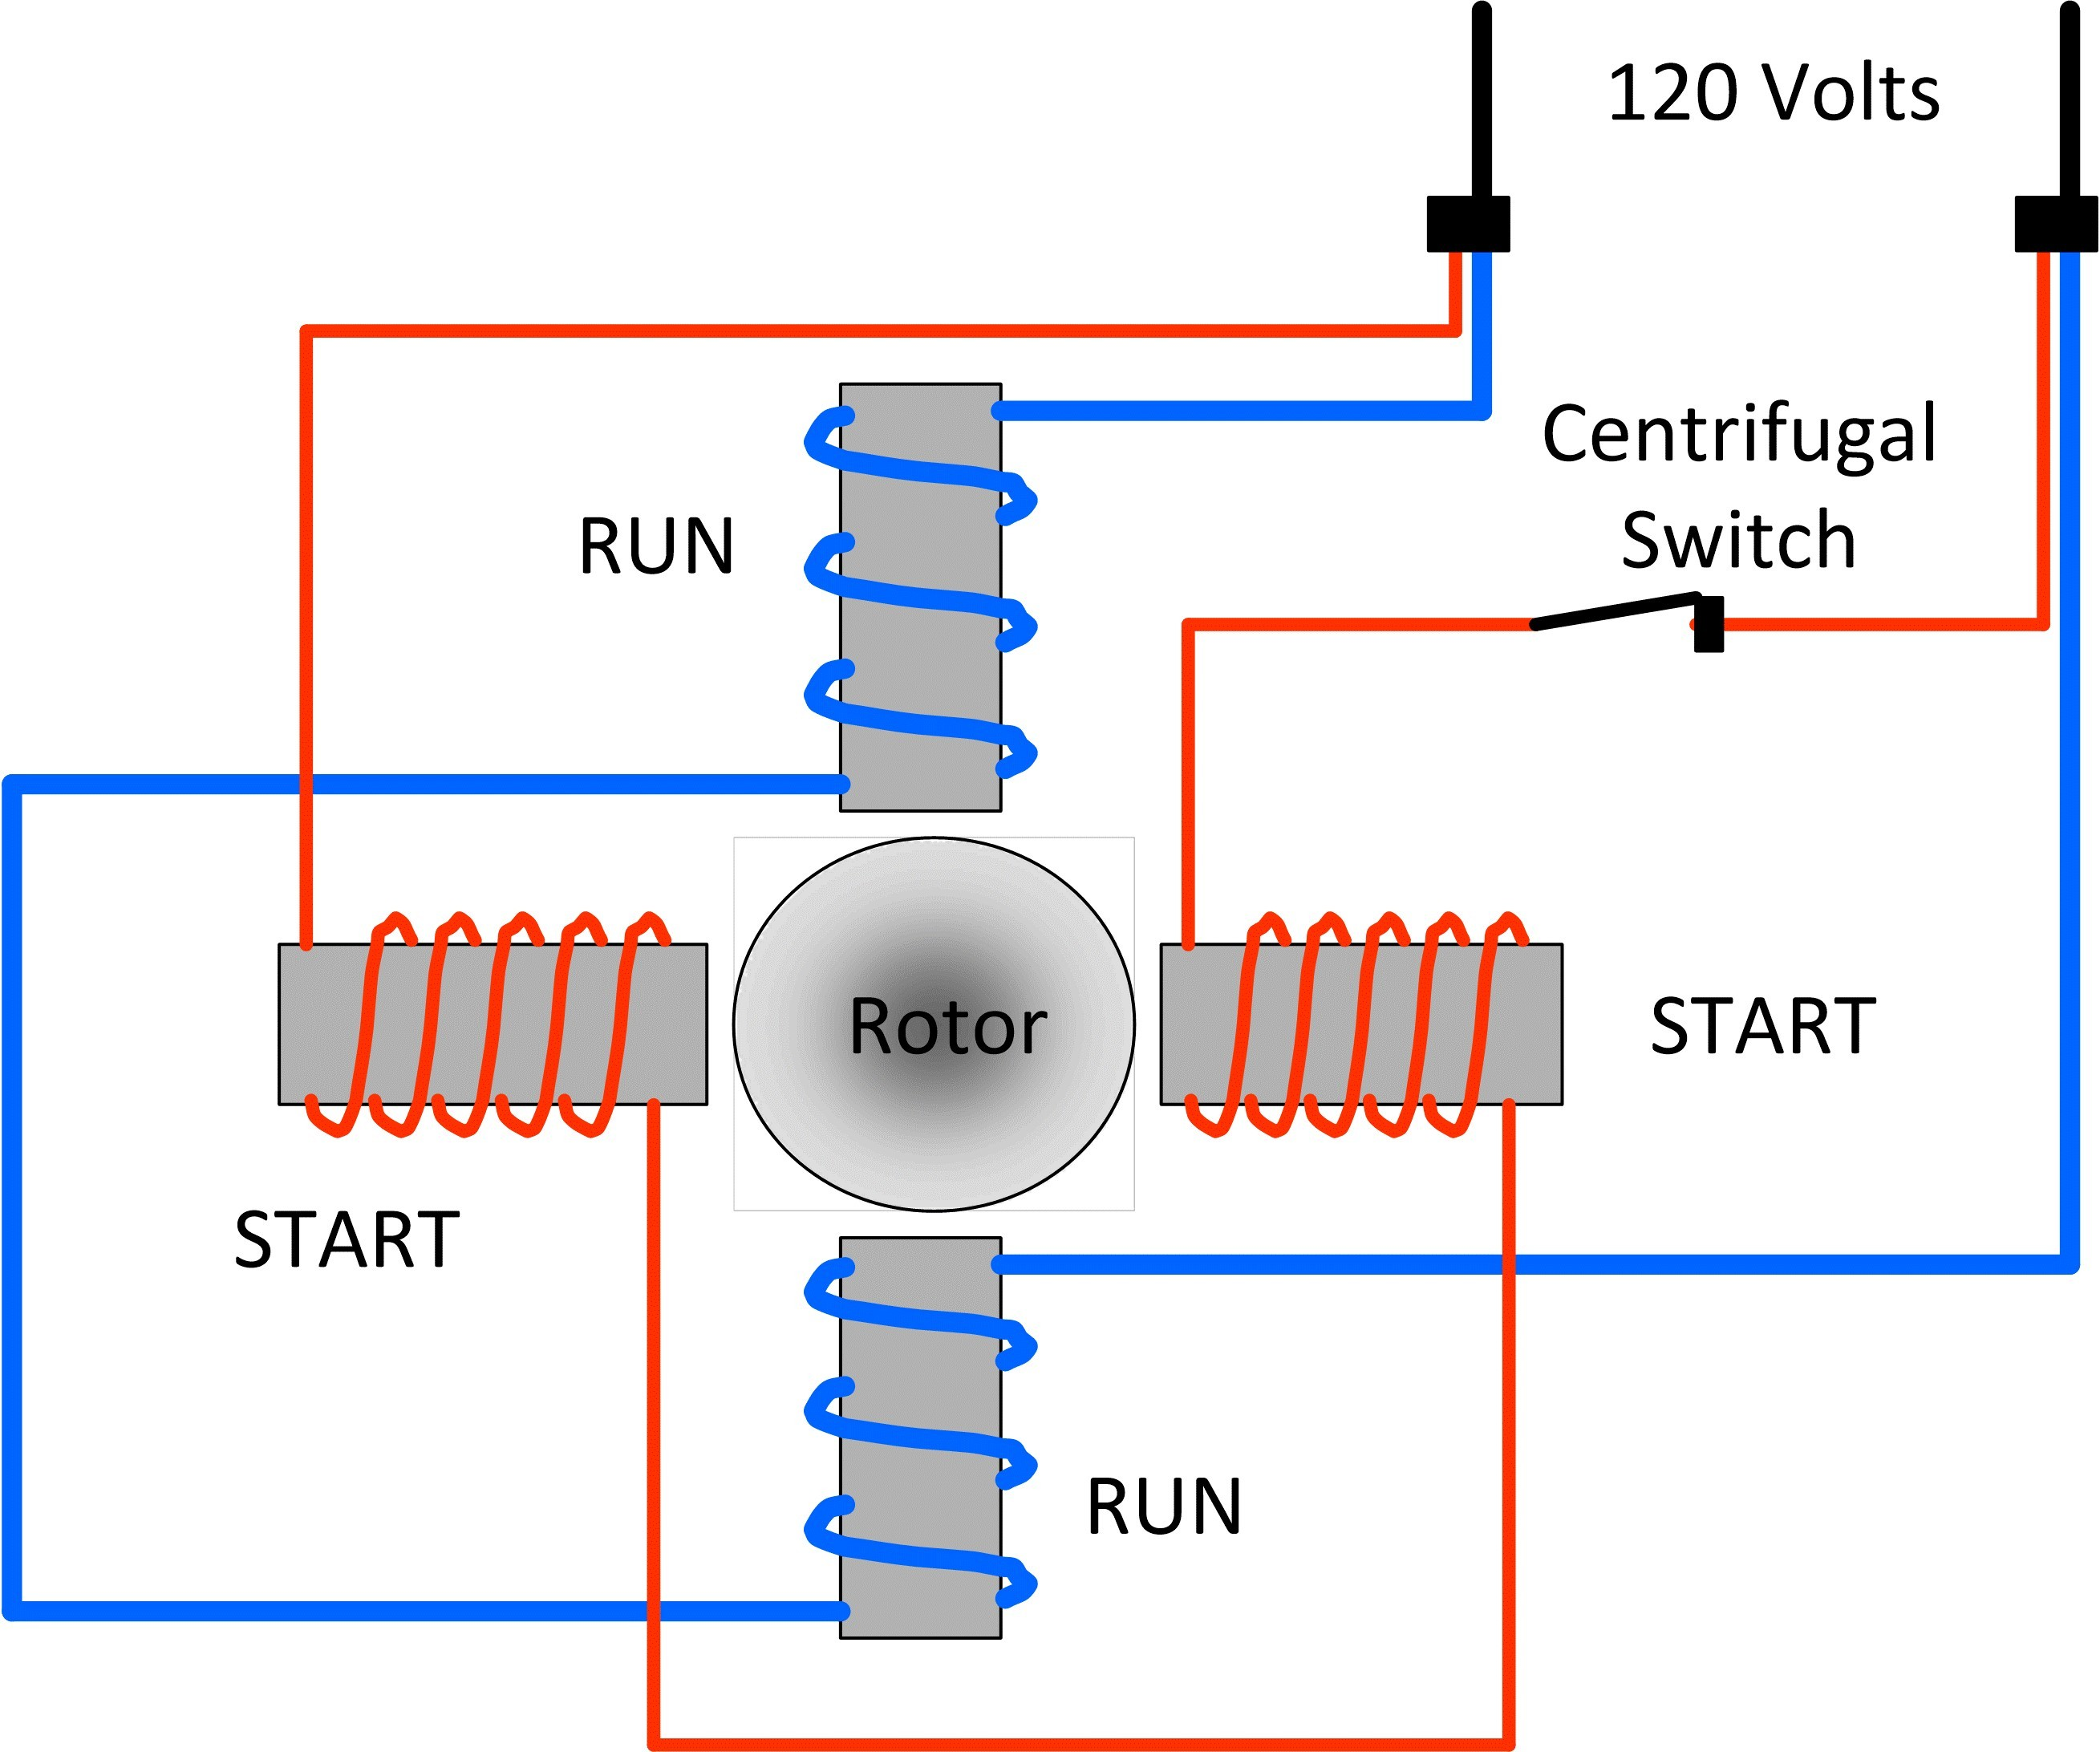 120 Volt Single Phase Motor Winding Diagrams - DIY Enthusiasts ...